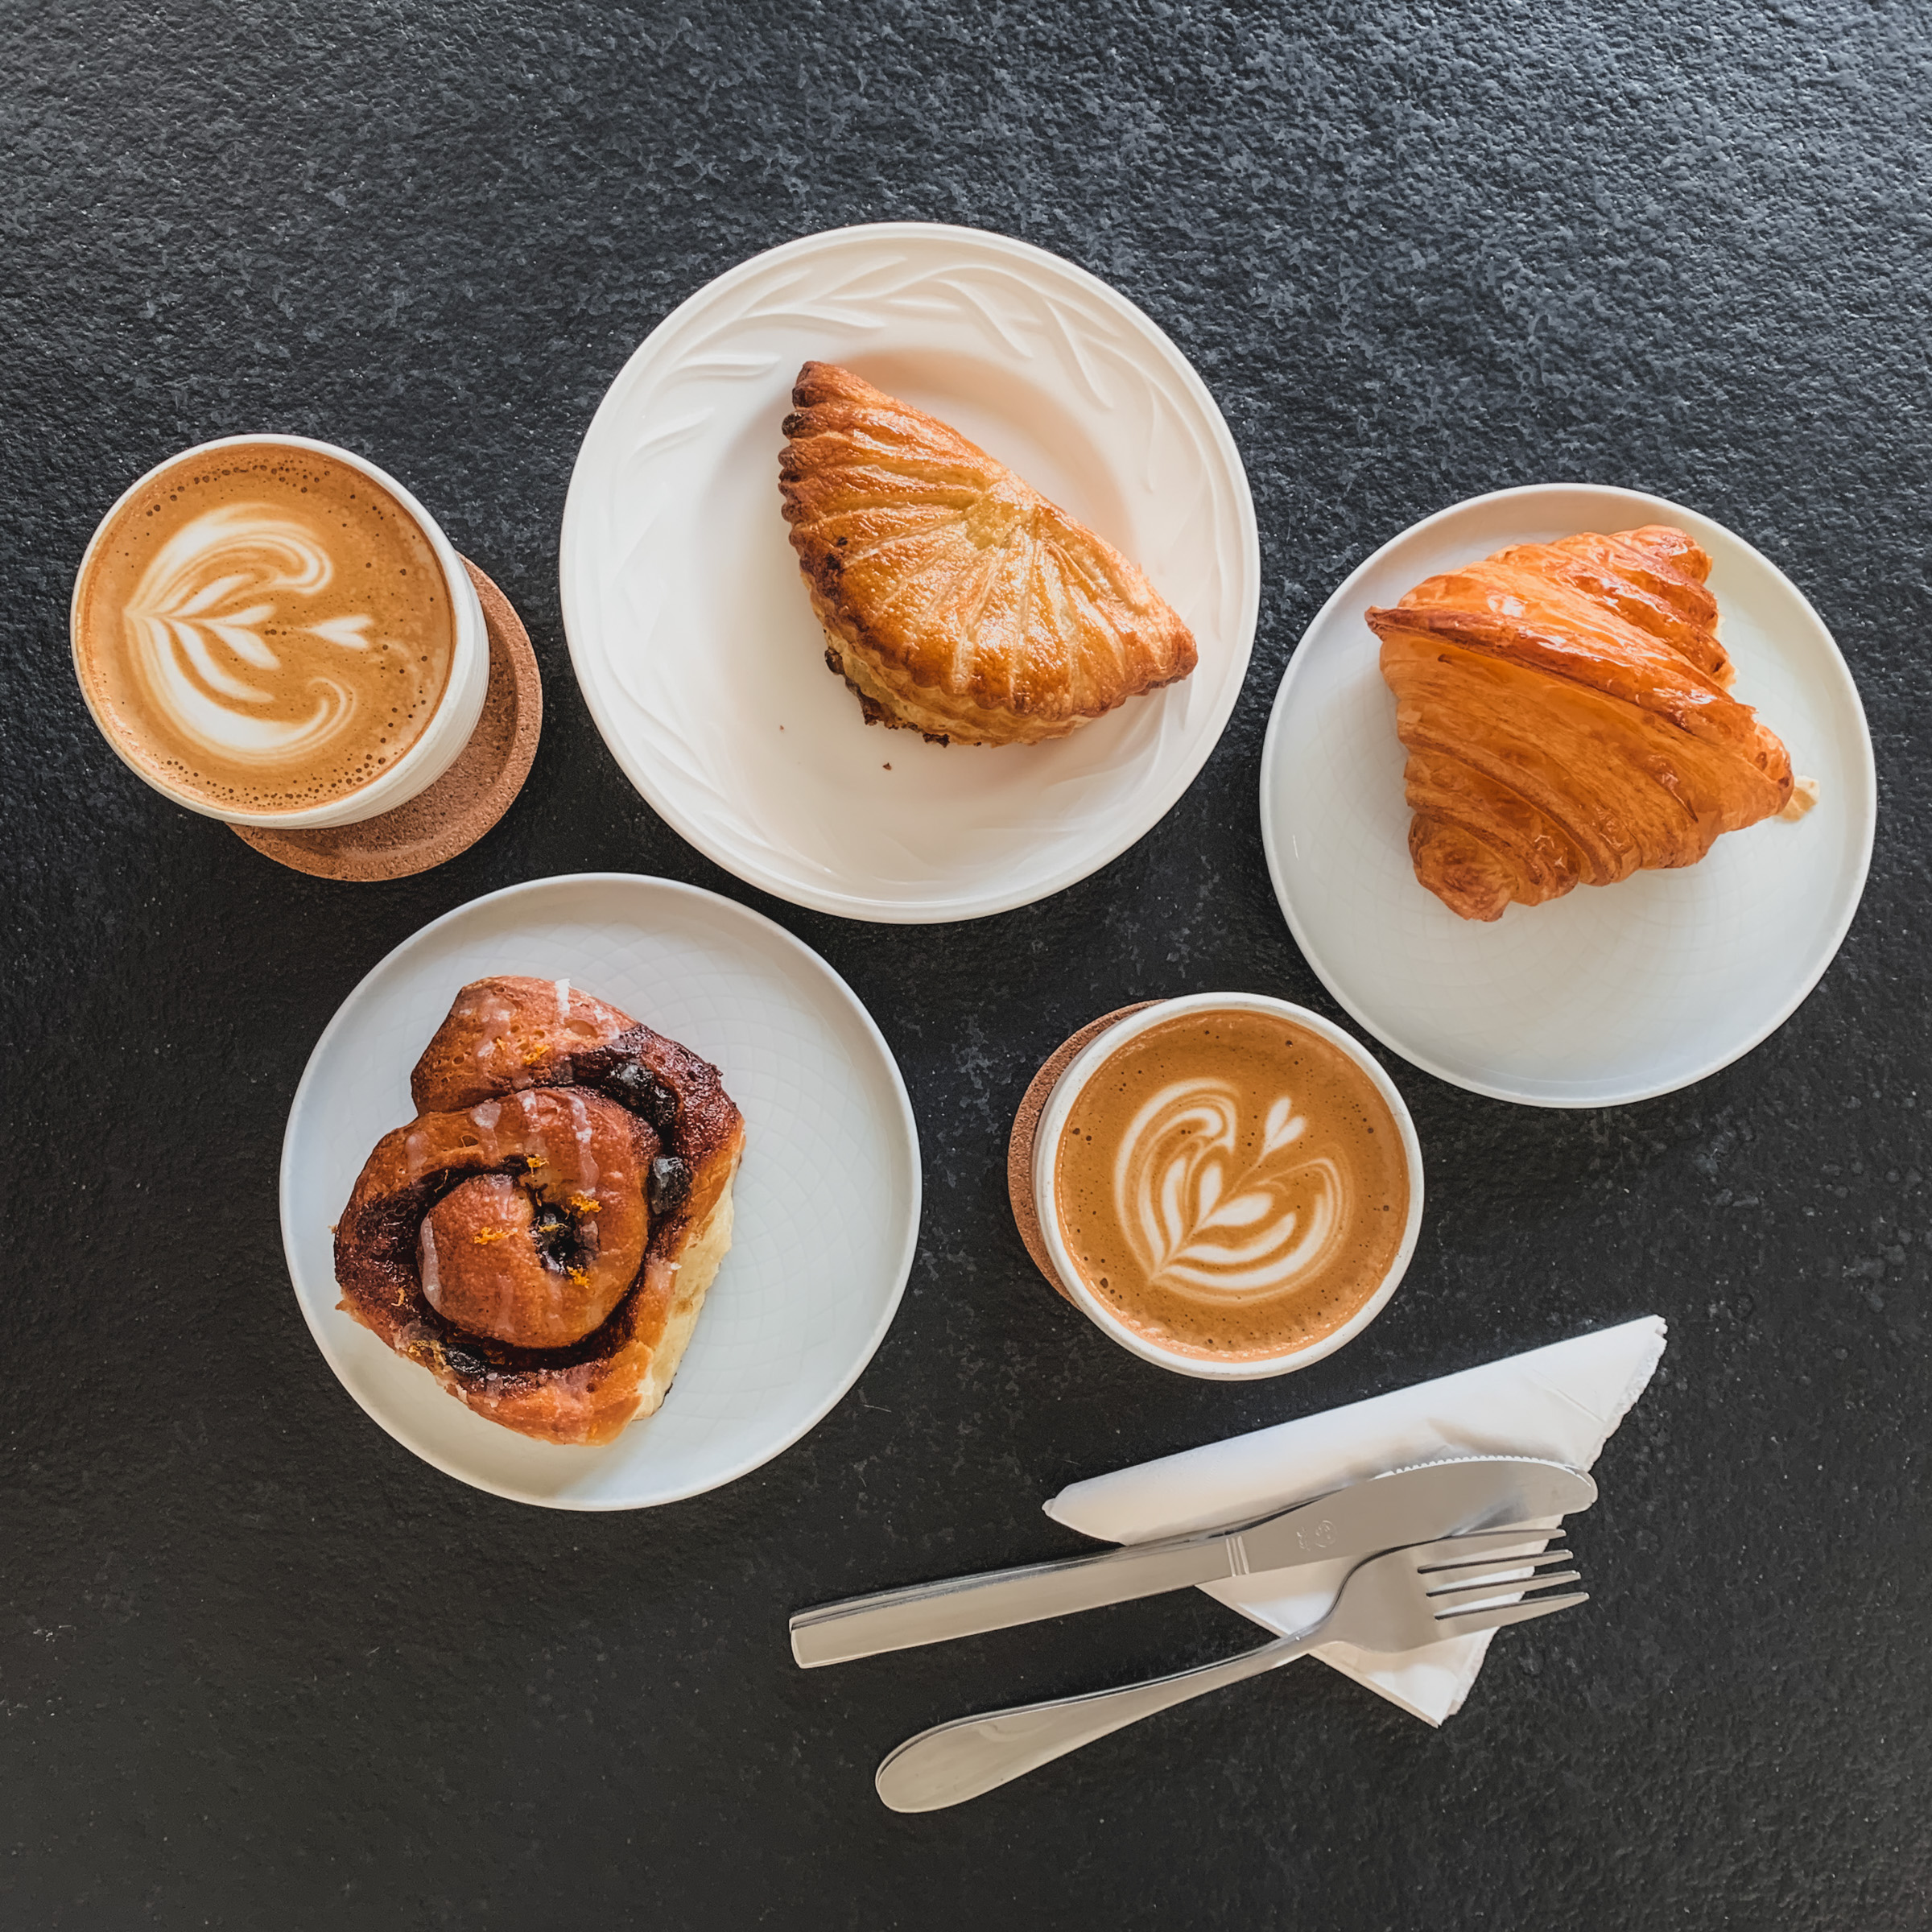 Lifestyle photography : Latte, pastries, cinnamon roll spread, RollingBear Travels blog.